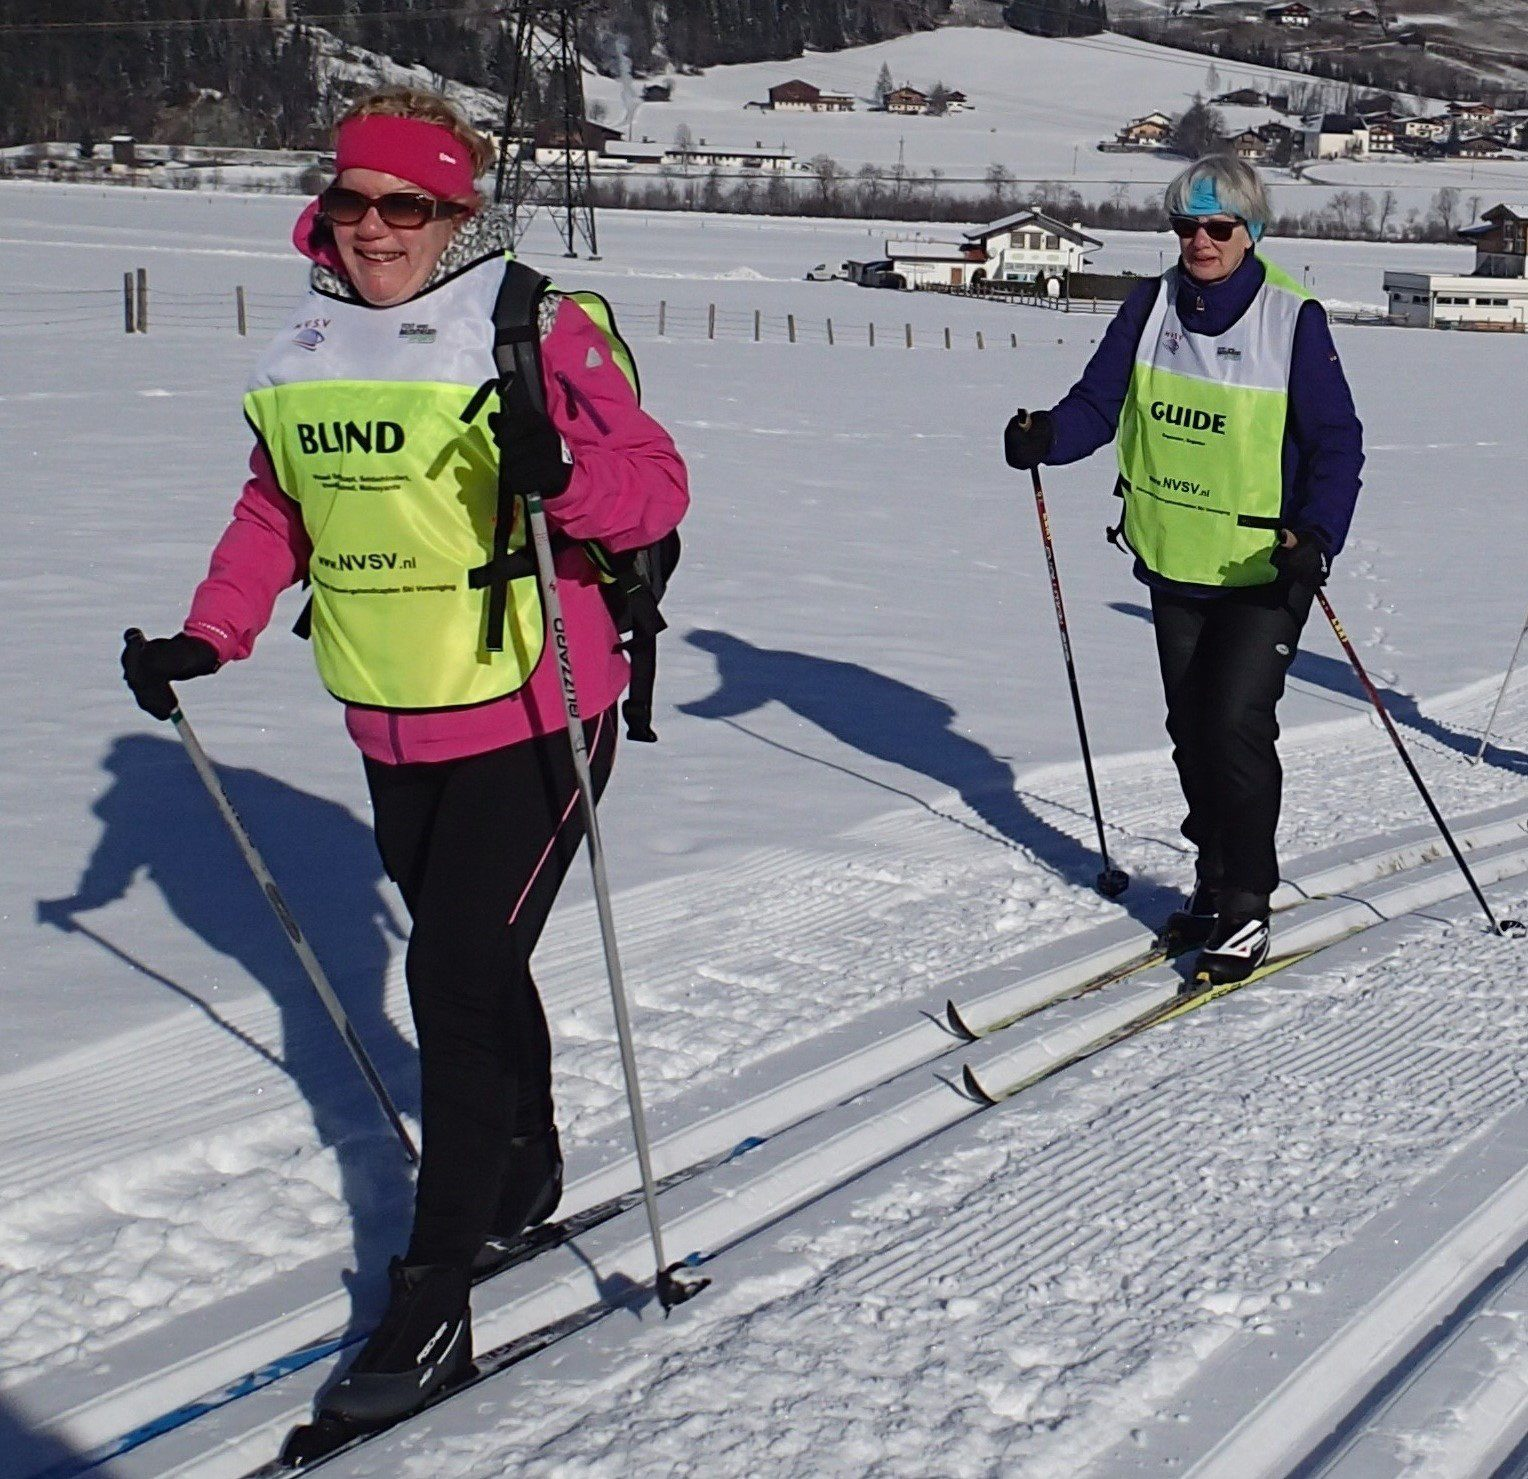 /wireless-communication-system-cross-country-skiing-axiwi-nvsv-1